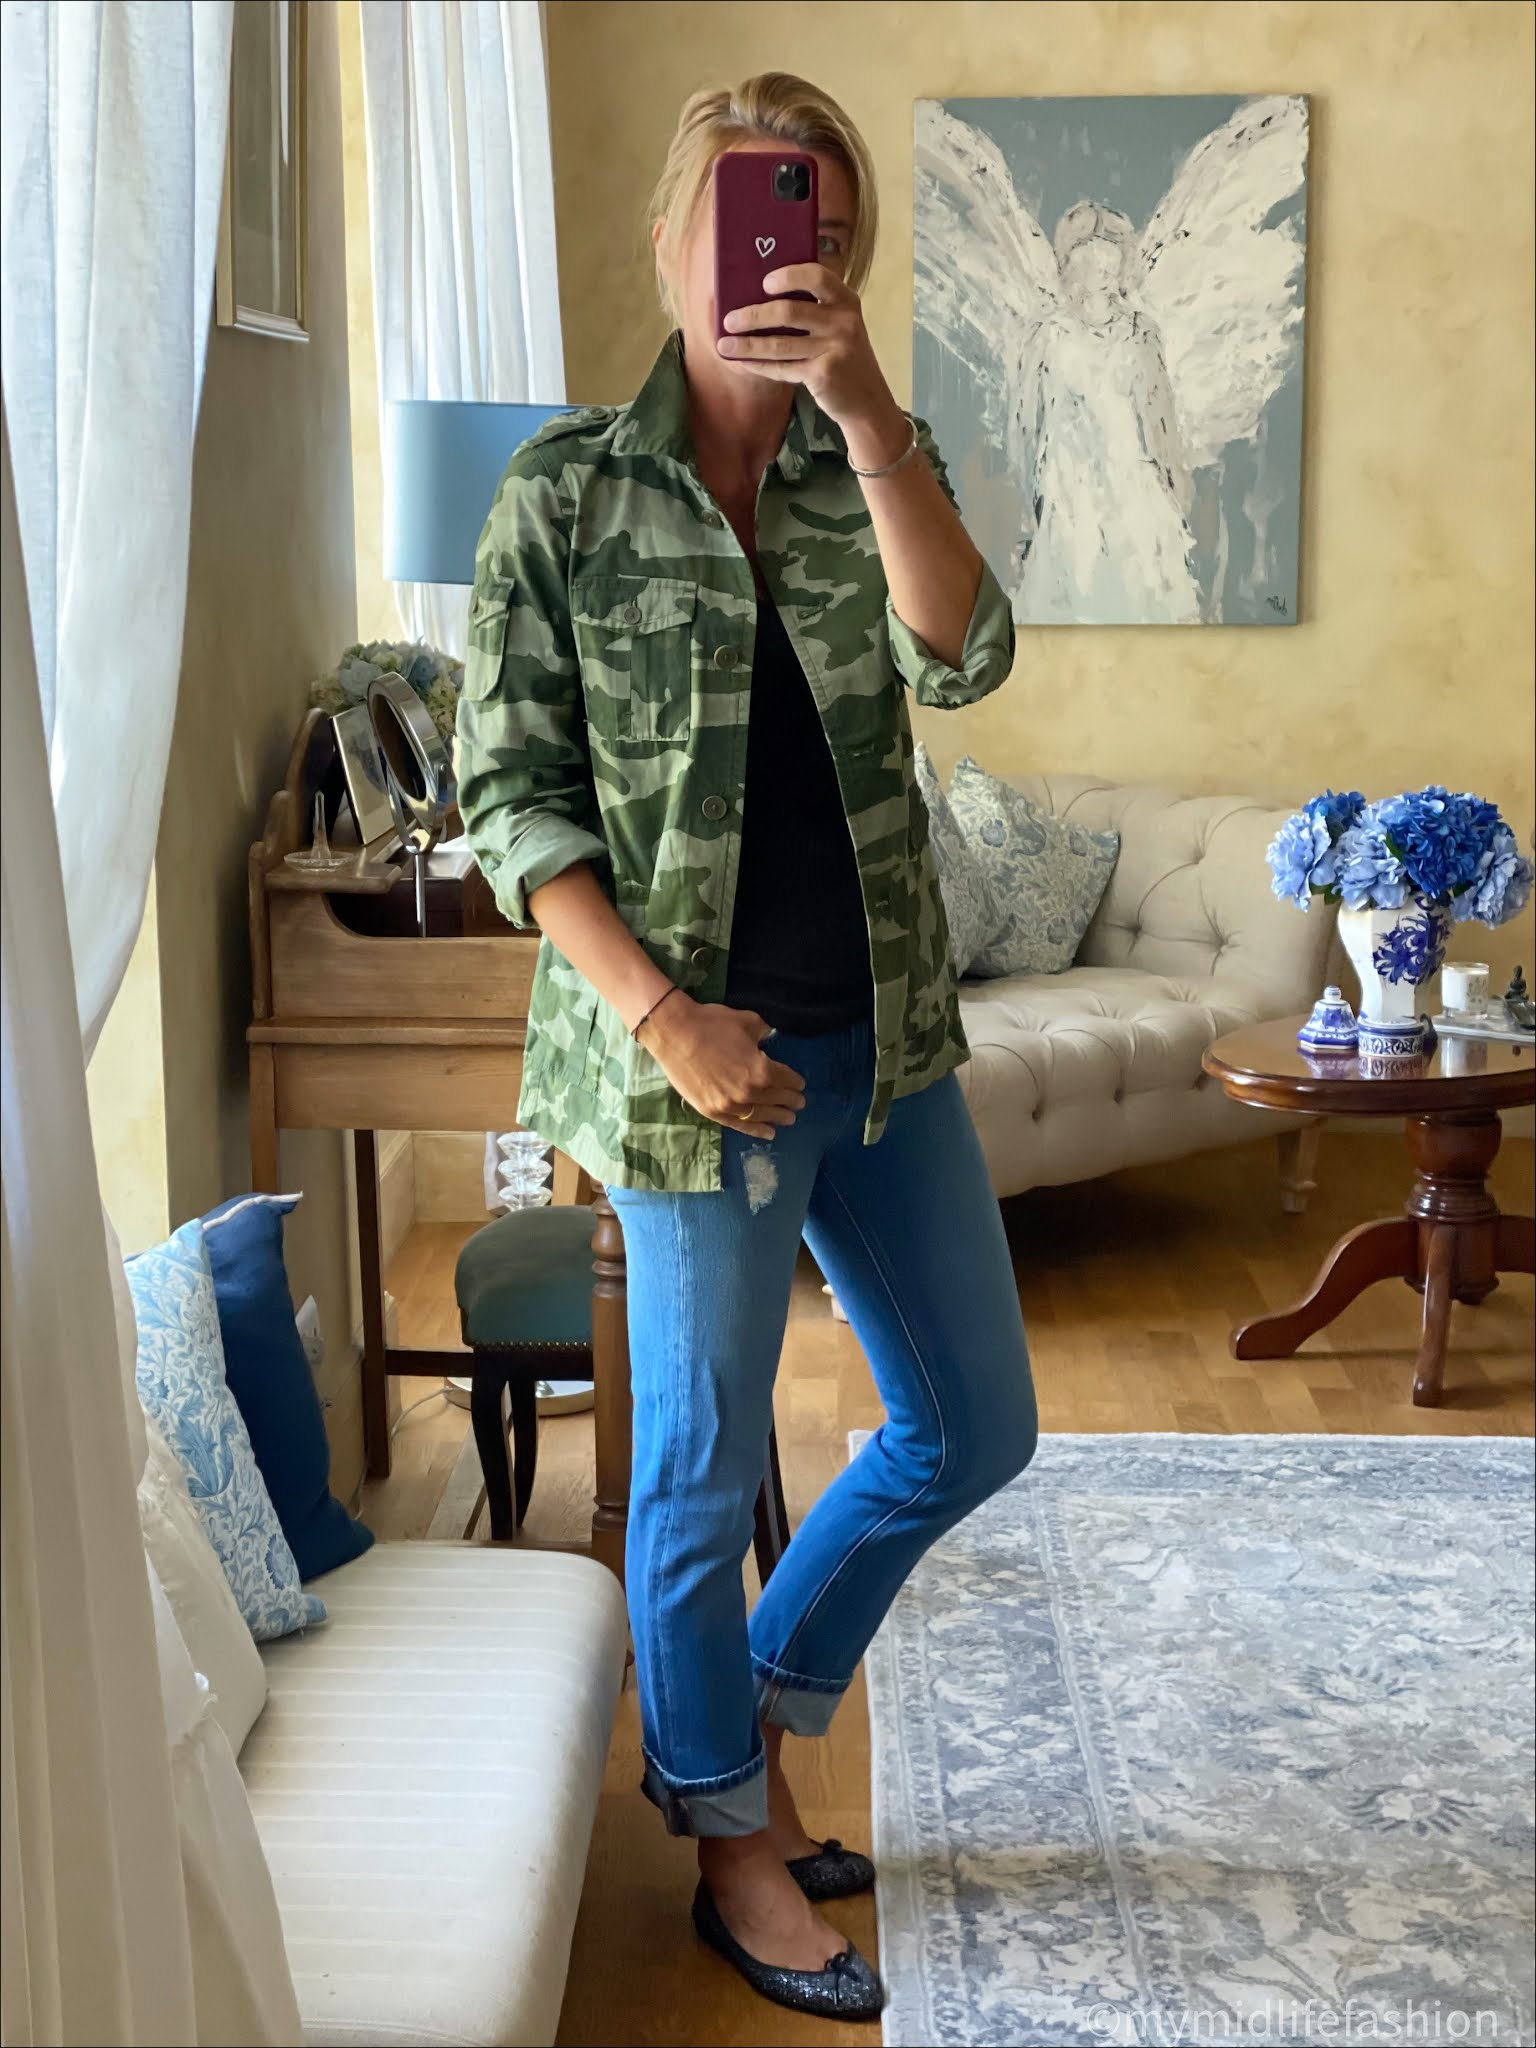 my midlife fashion, j crew camouflage jacket, and other stories ribbed tank, number 44 boyfriend jean, French sole India glitter ballet pumps